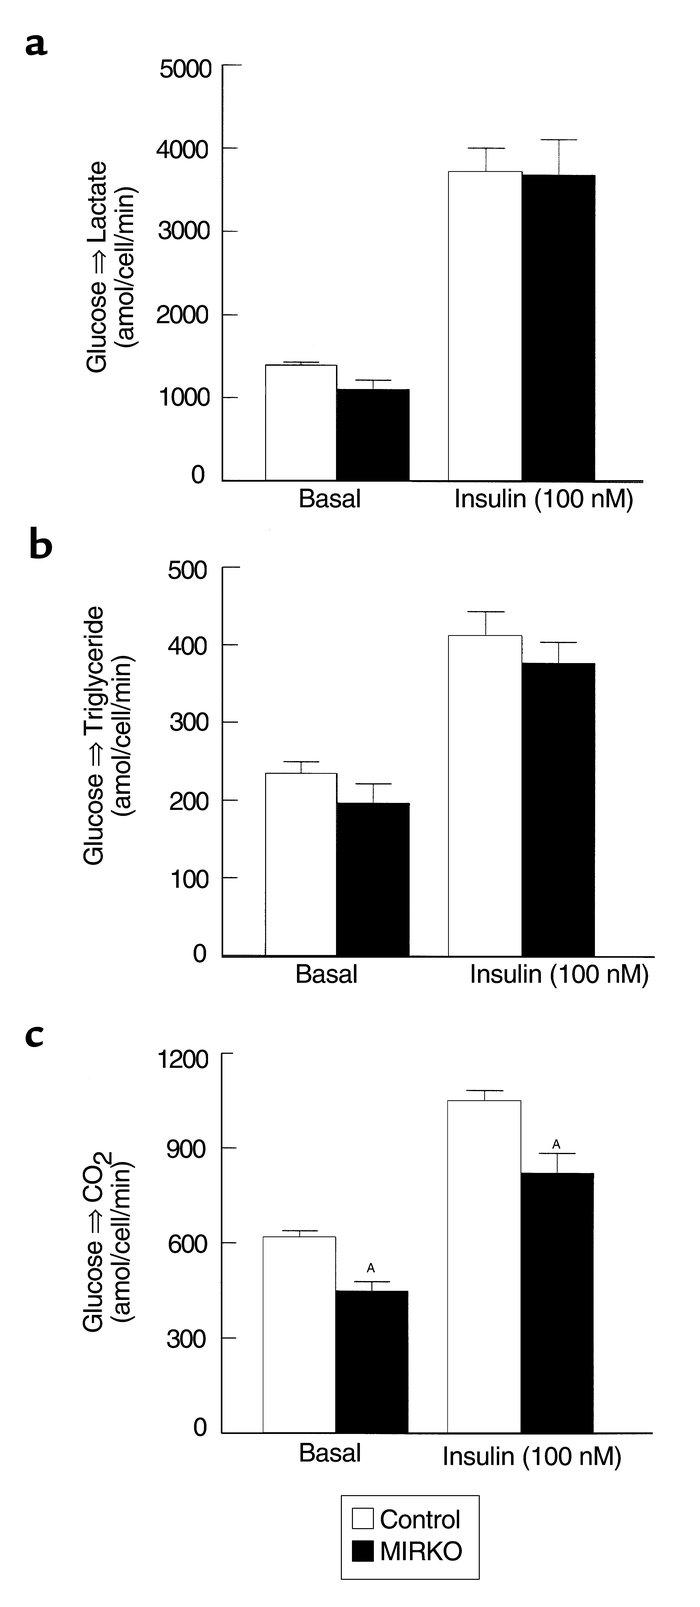 Glucose metabolic flux in isolated adipocytes. (a) Basal (left) and insu...